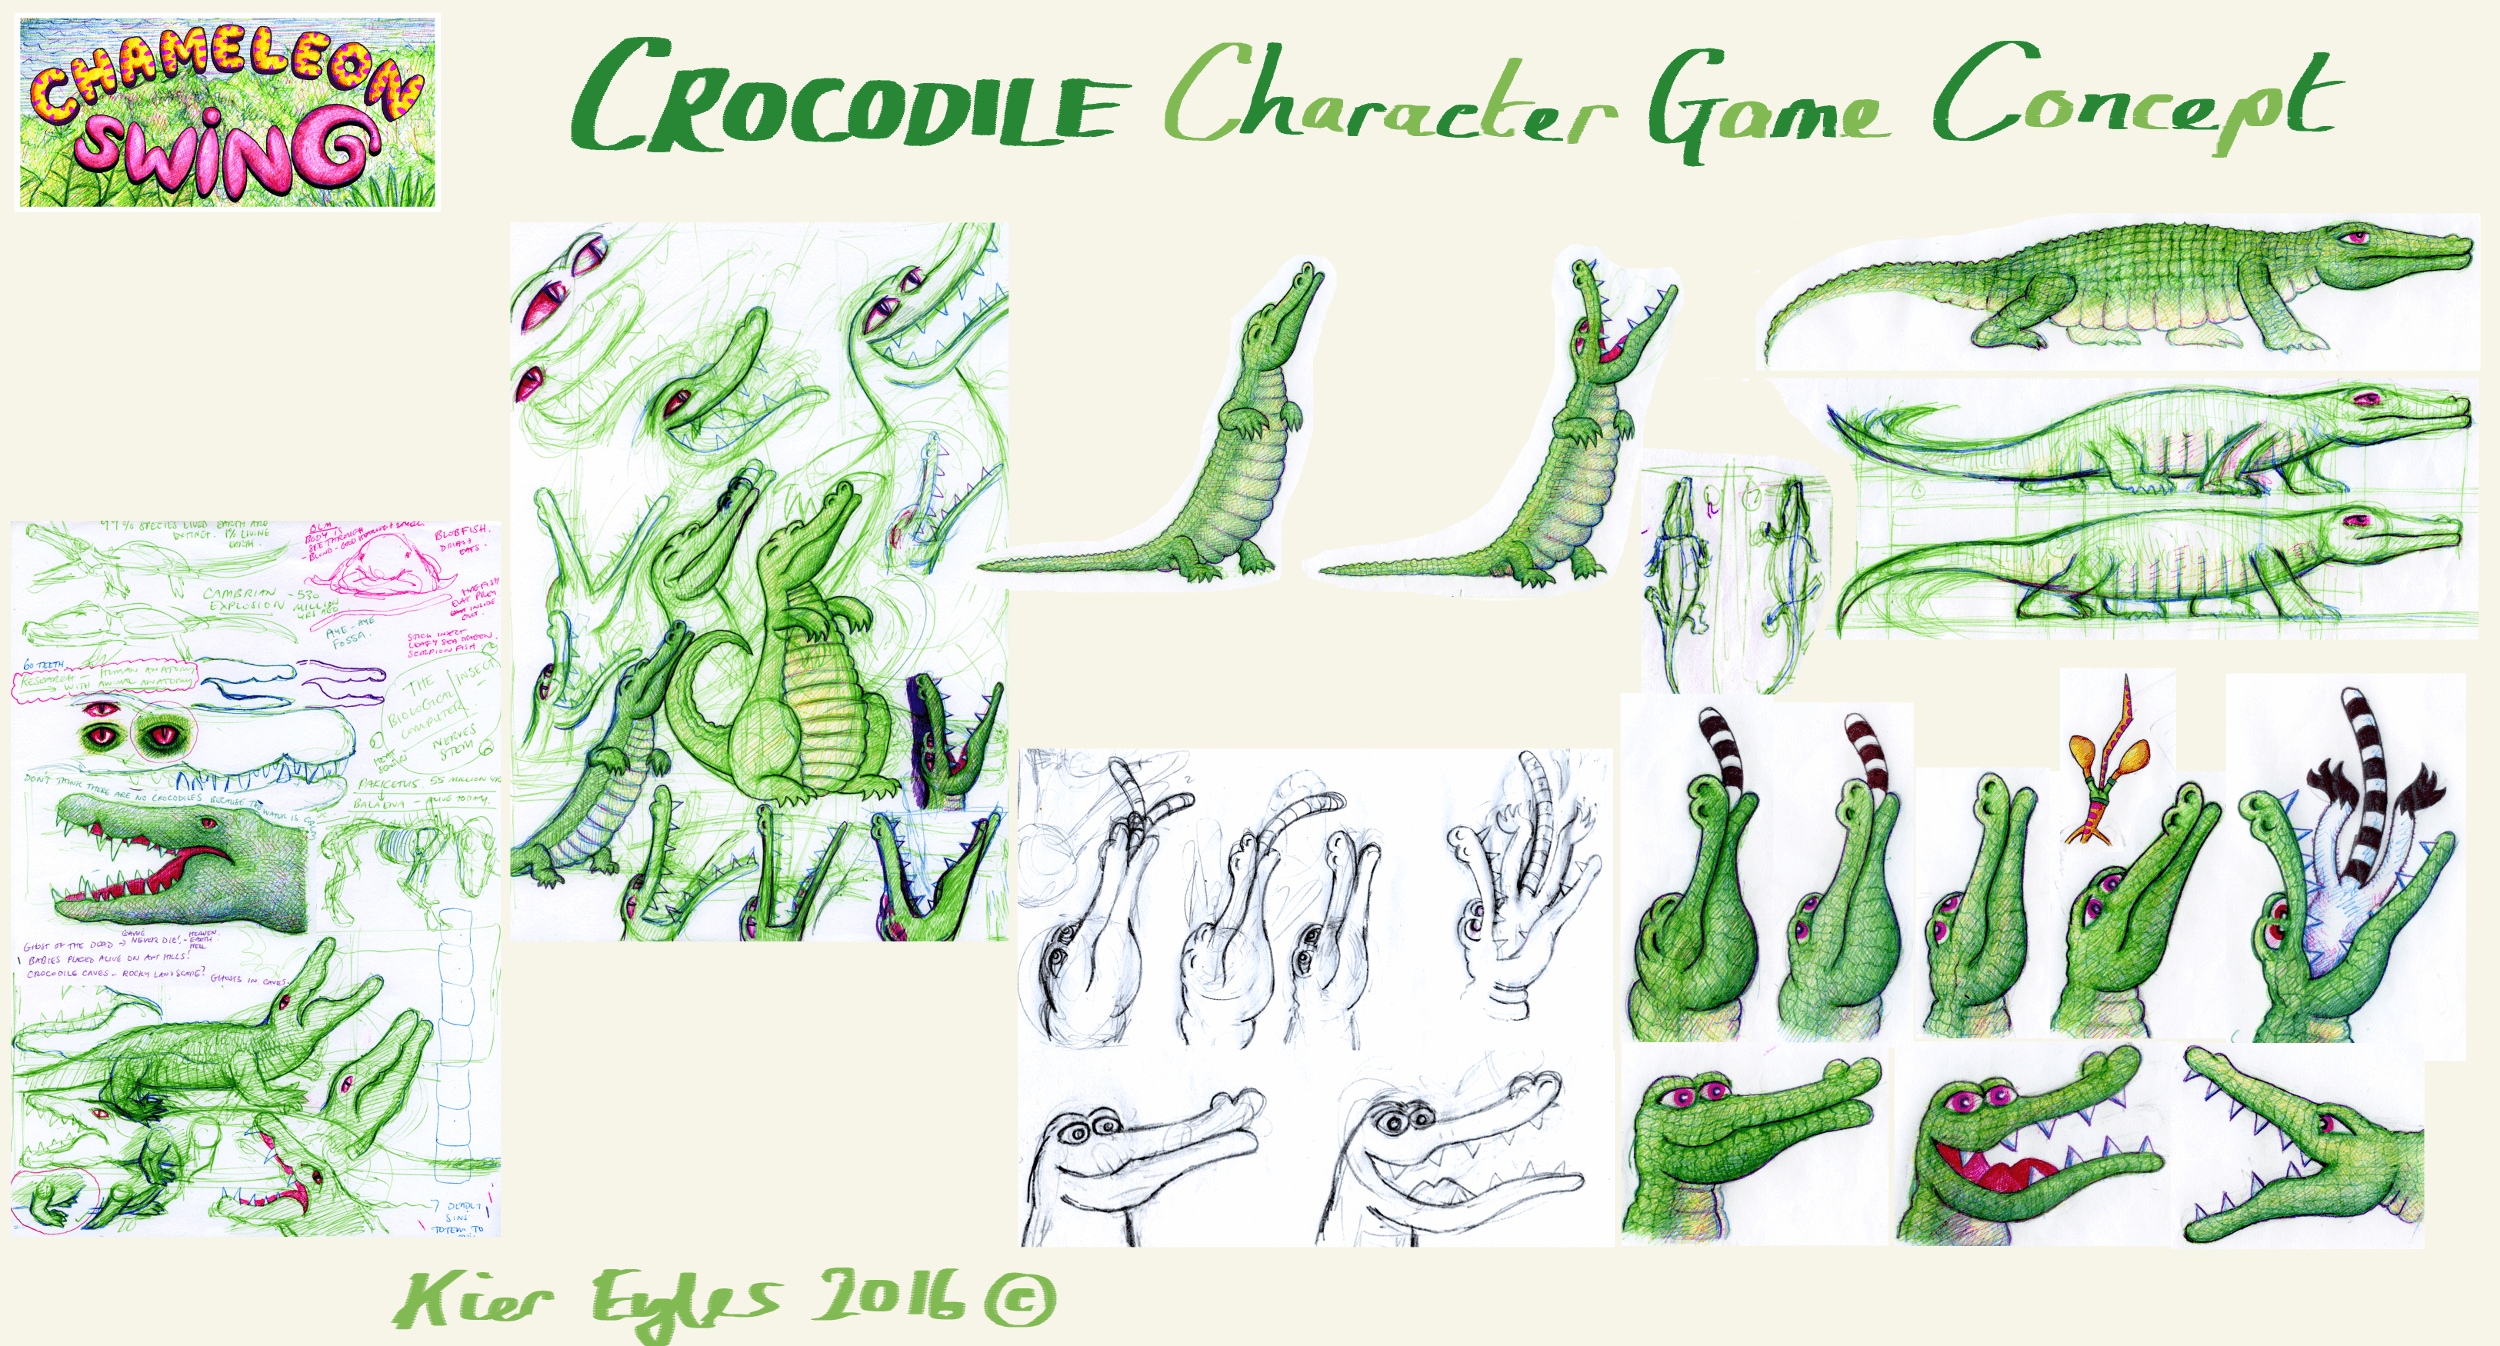 Turning the crocodile into a cartoon, while keeping the sinister nature Ammit.